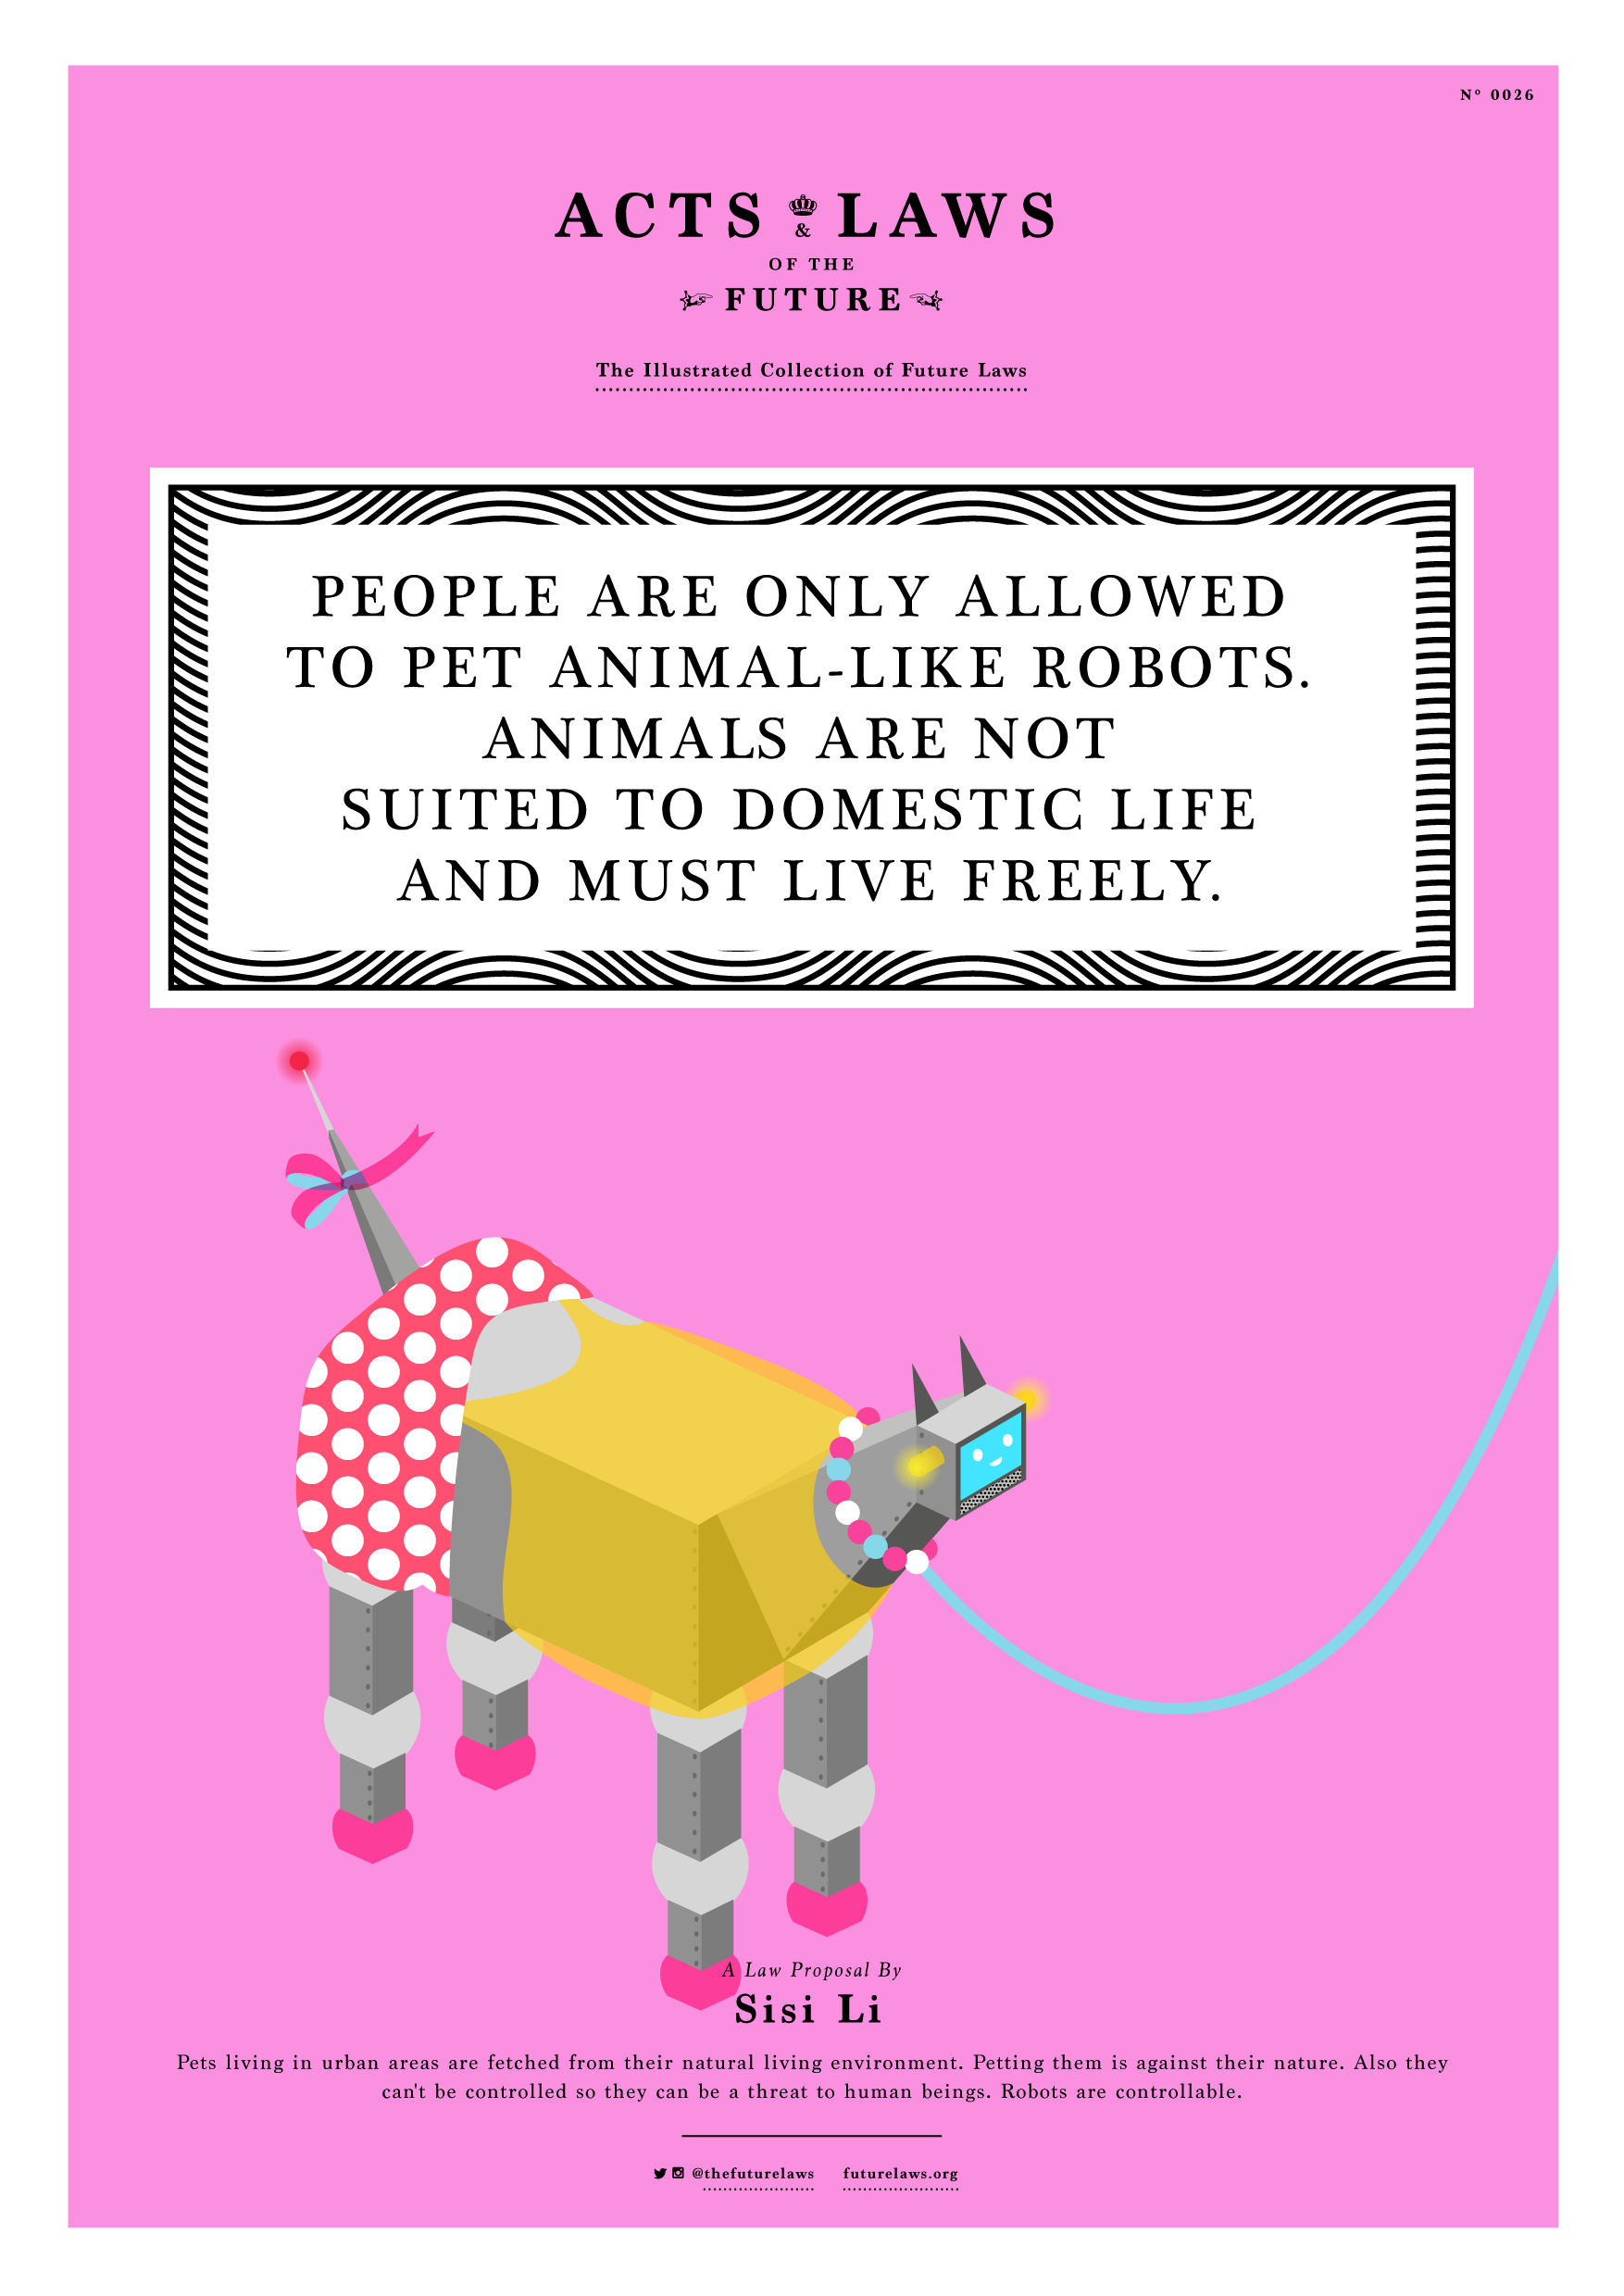 People are only allowed to pet animal-like robots.  Animals are not suited to domestic life and must live freely.